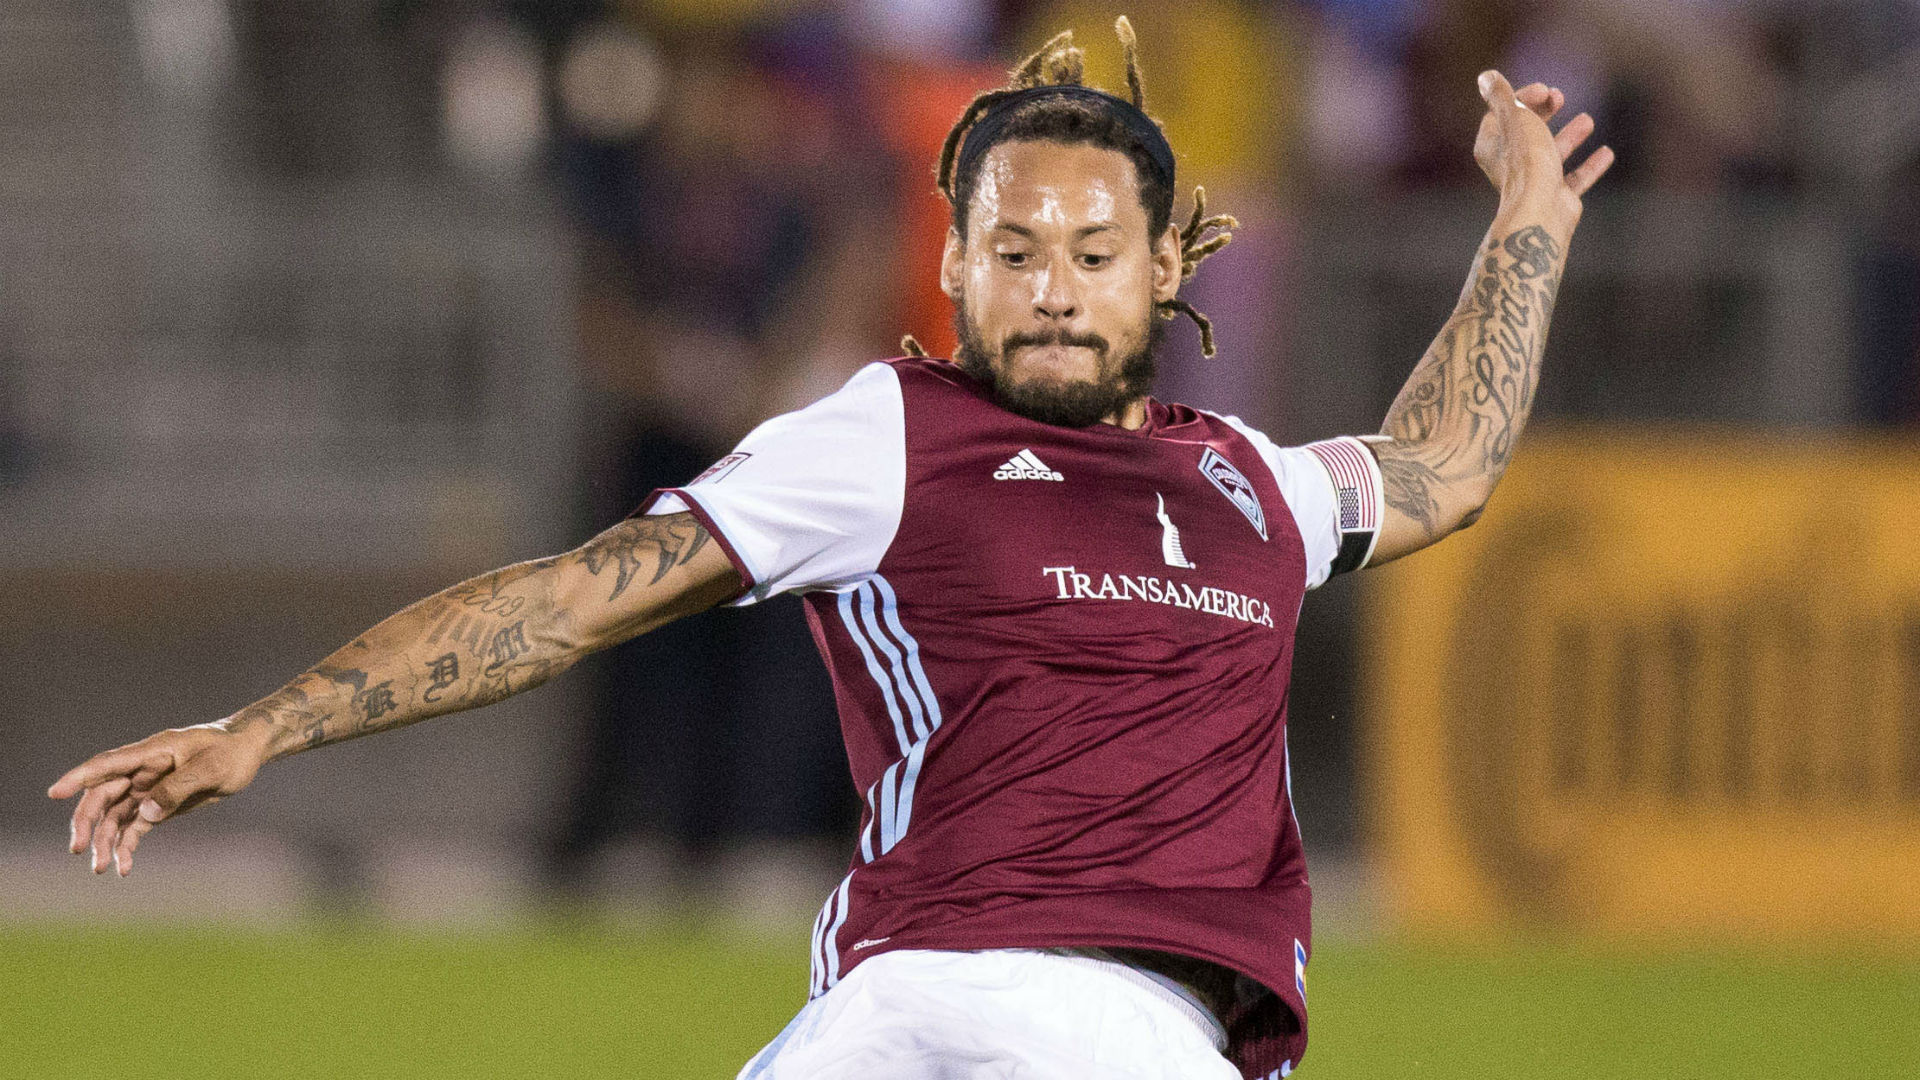 Jermaine-jones-colorado-rapids-070416jpg_mov8zu2nqlc618bto4hrxb6zq